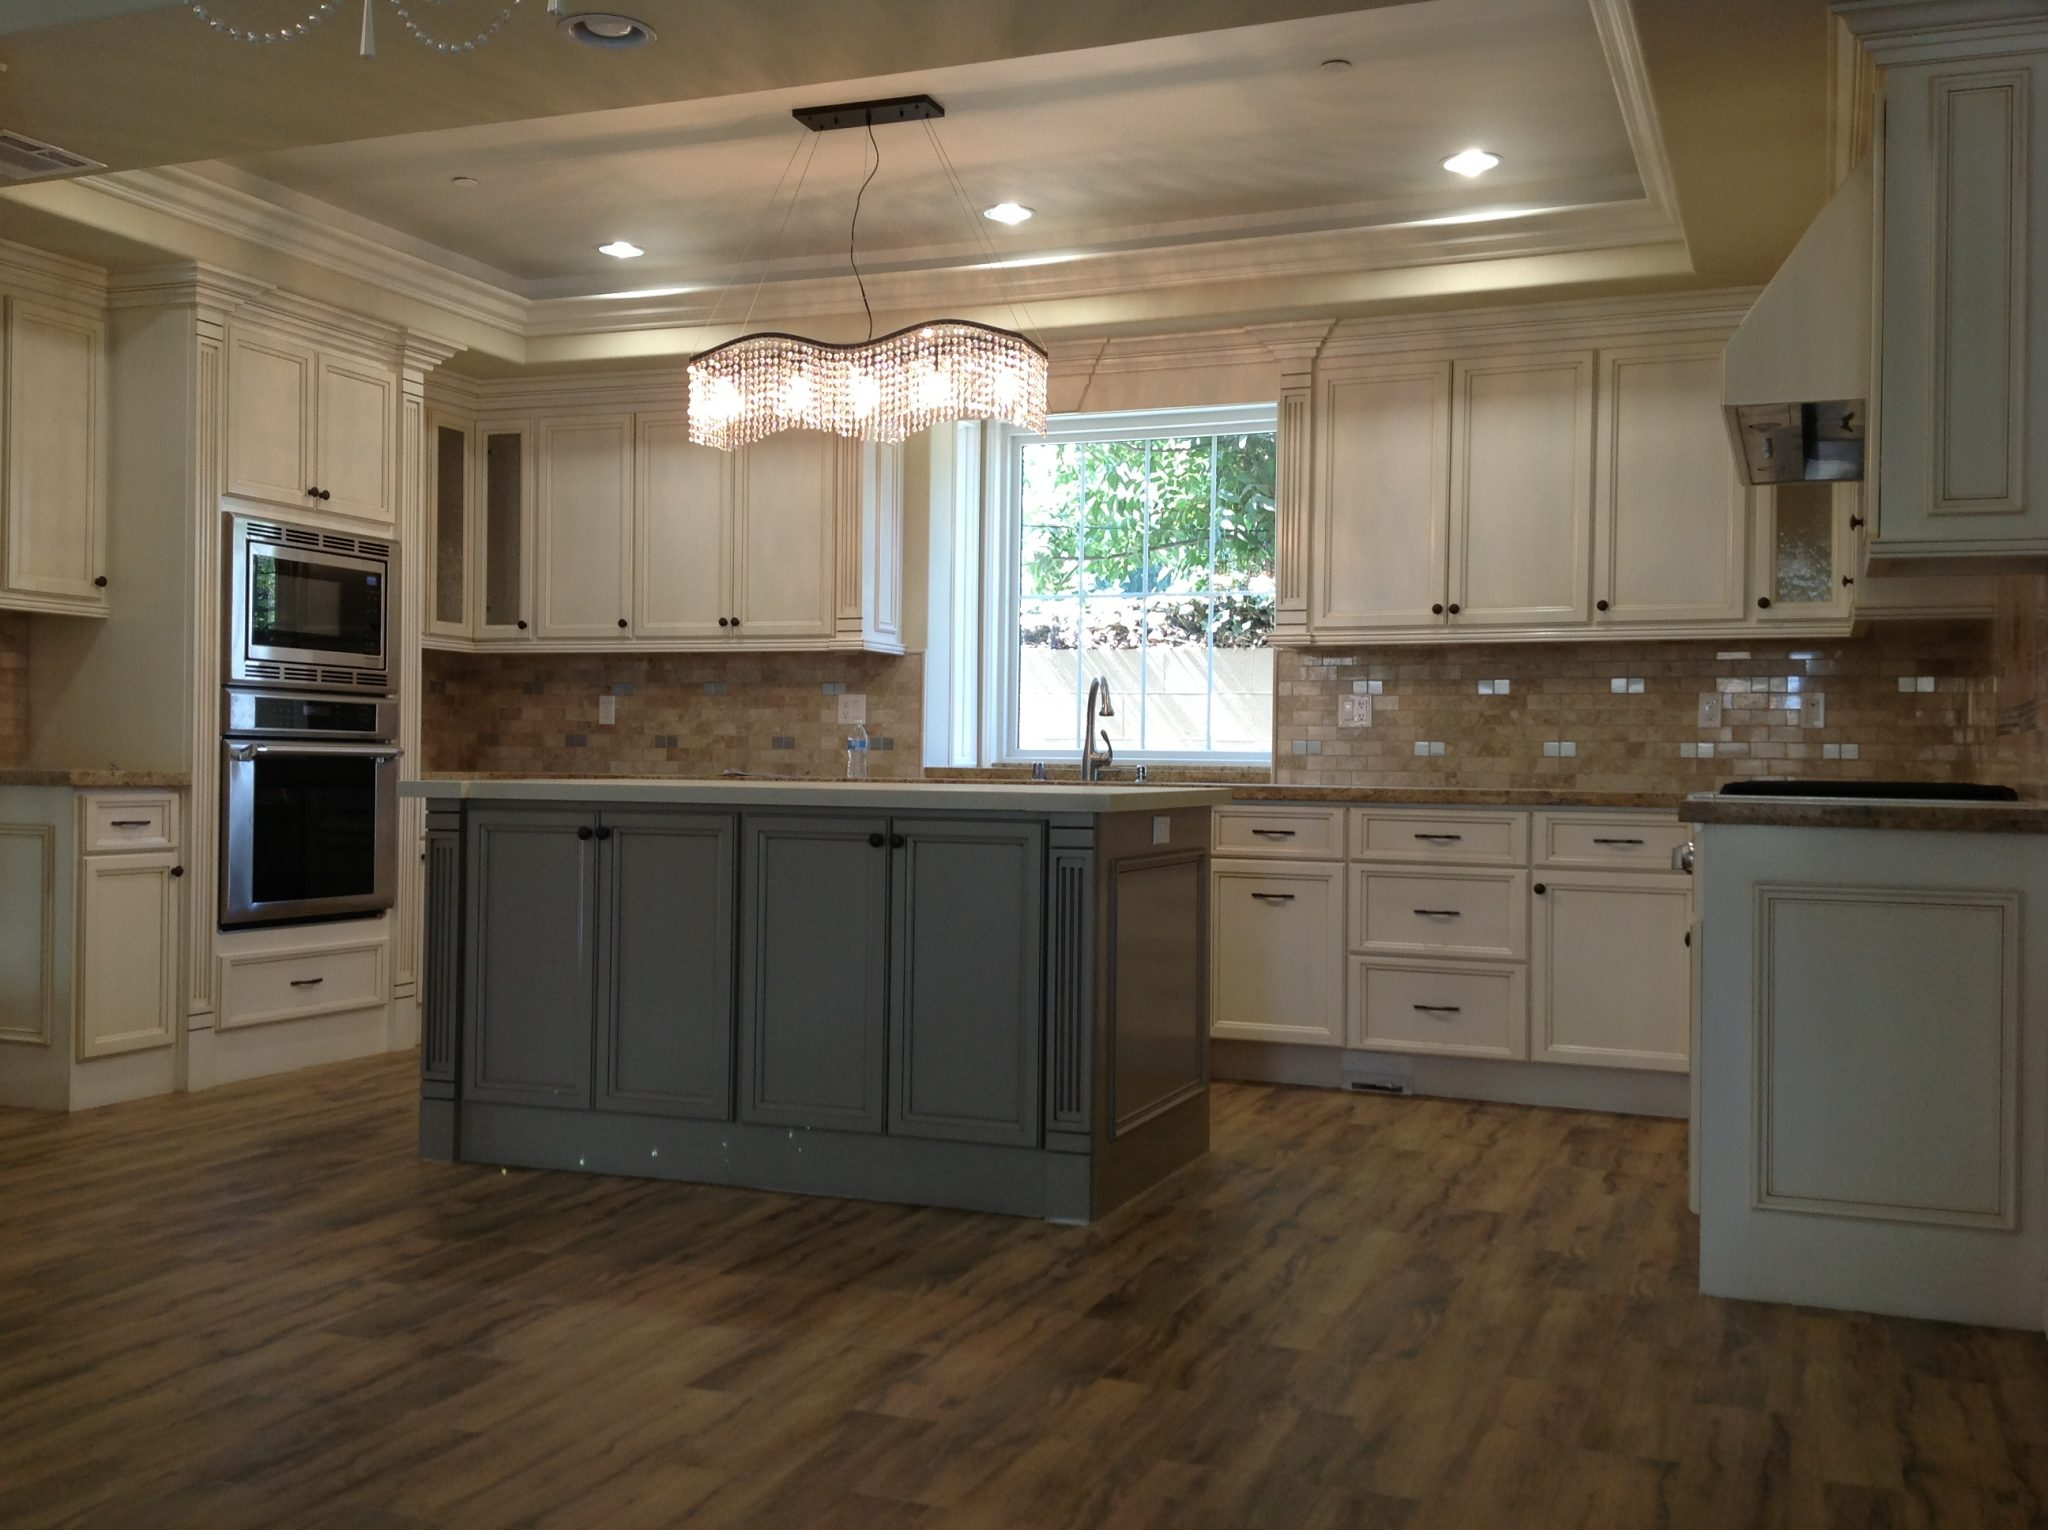 Swell Antique White Cabinets With Gray Island My Ideal Home Interior Design Ideas Gentotryabchikinfo